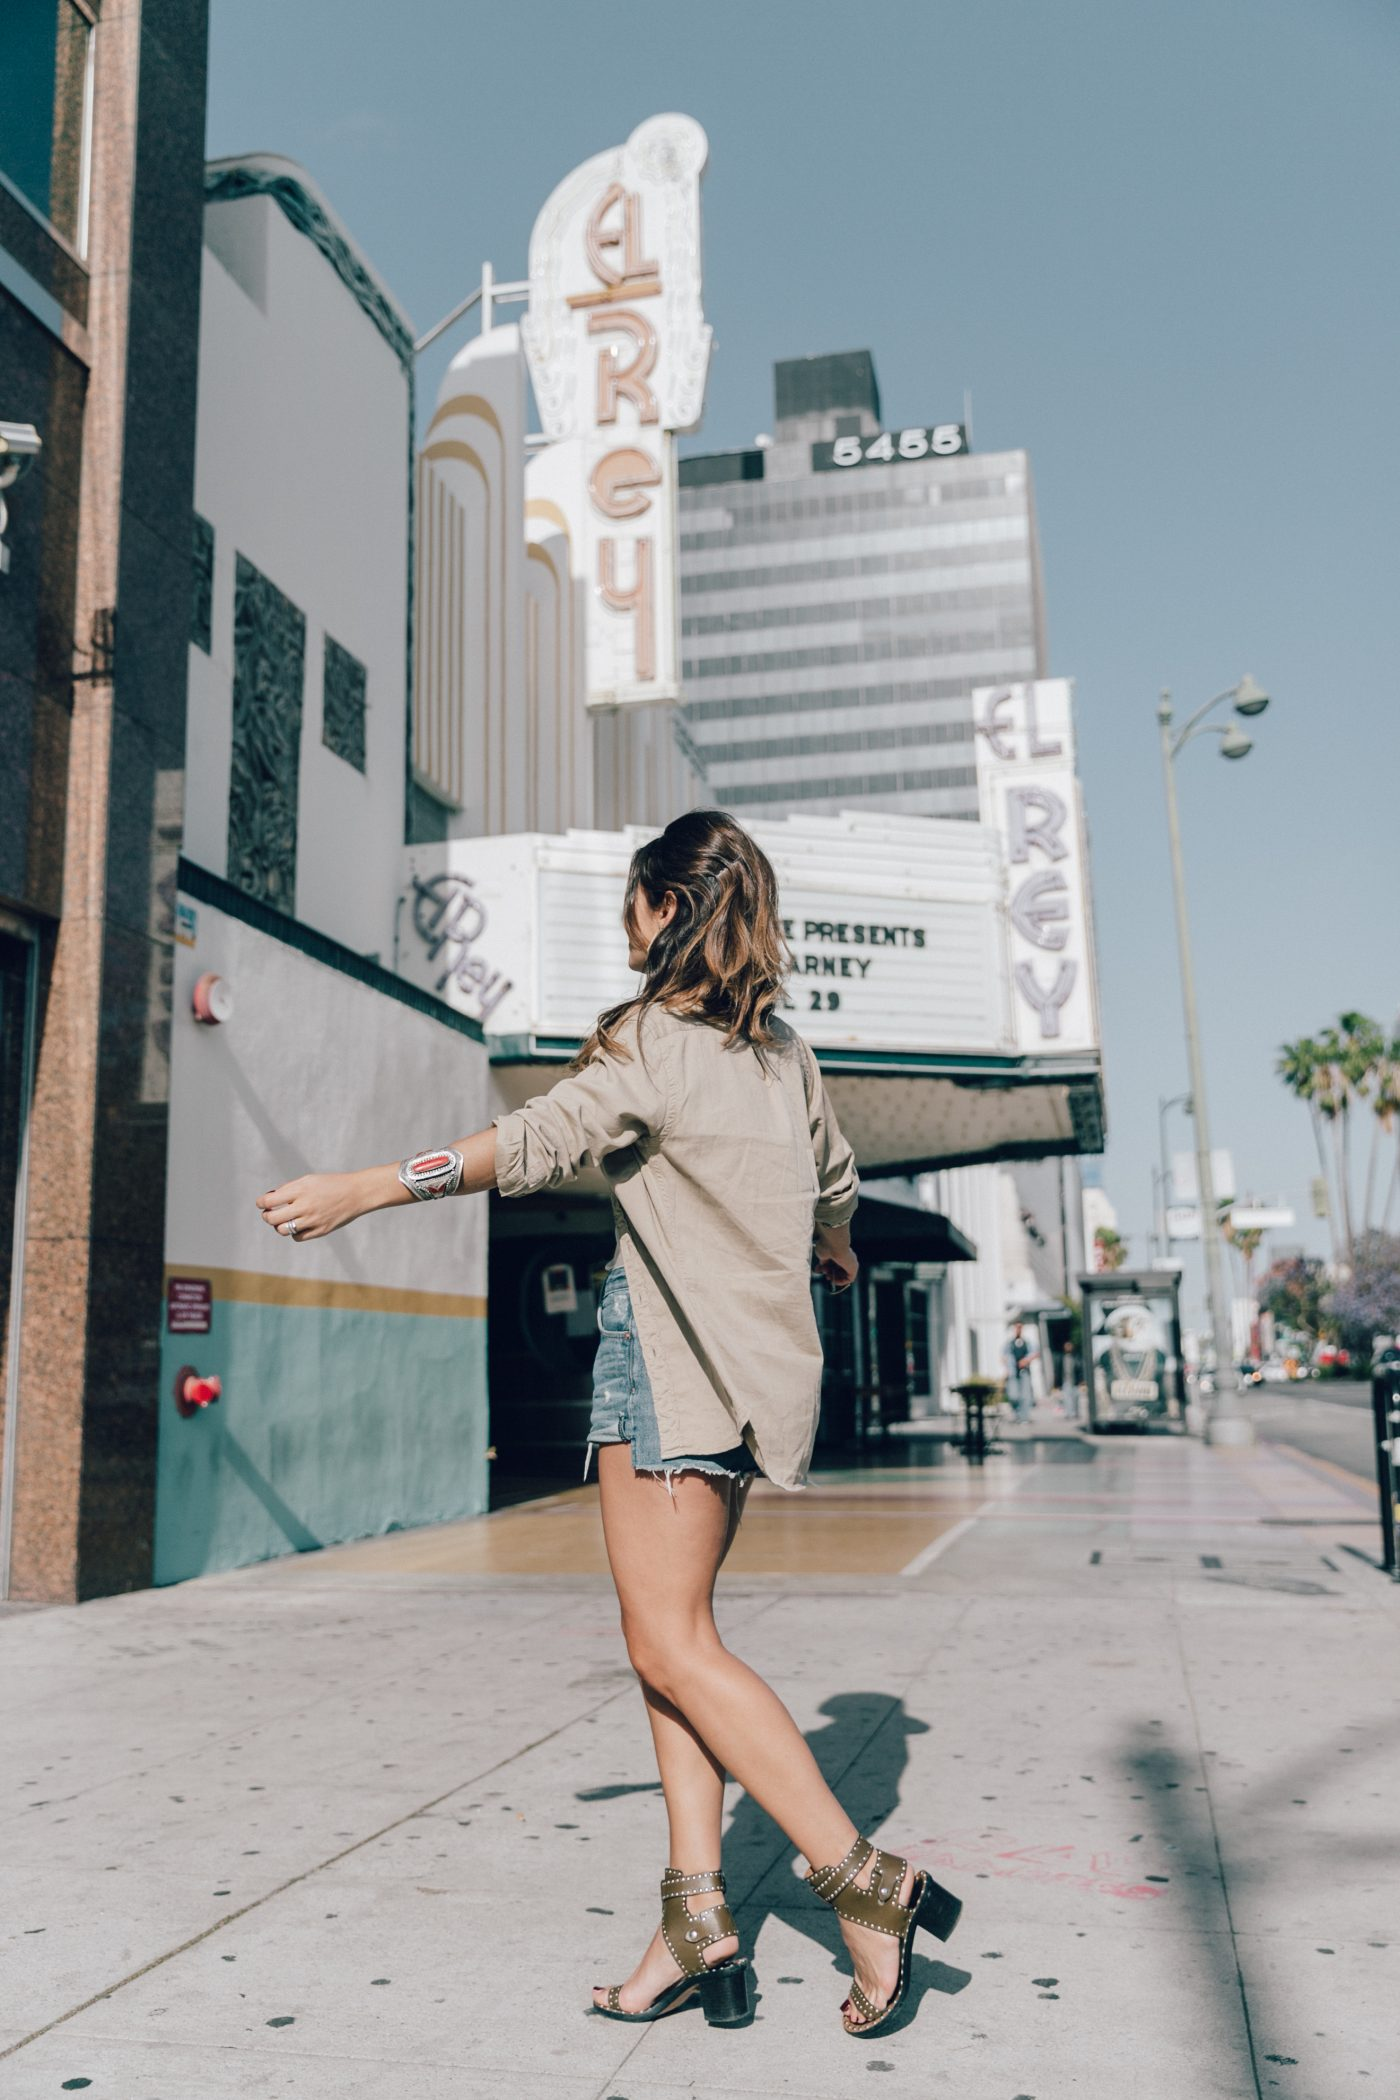 Levis_Shirt-GRLFRND_Denim-Chloe_Bag-Los_Angeles-Shorts-Outfit-Street_Style-Ray_Ban-Street_Style-Collage_Vintage-17